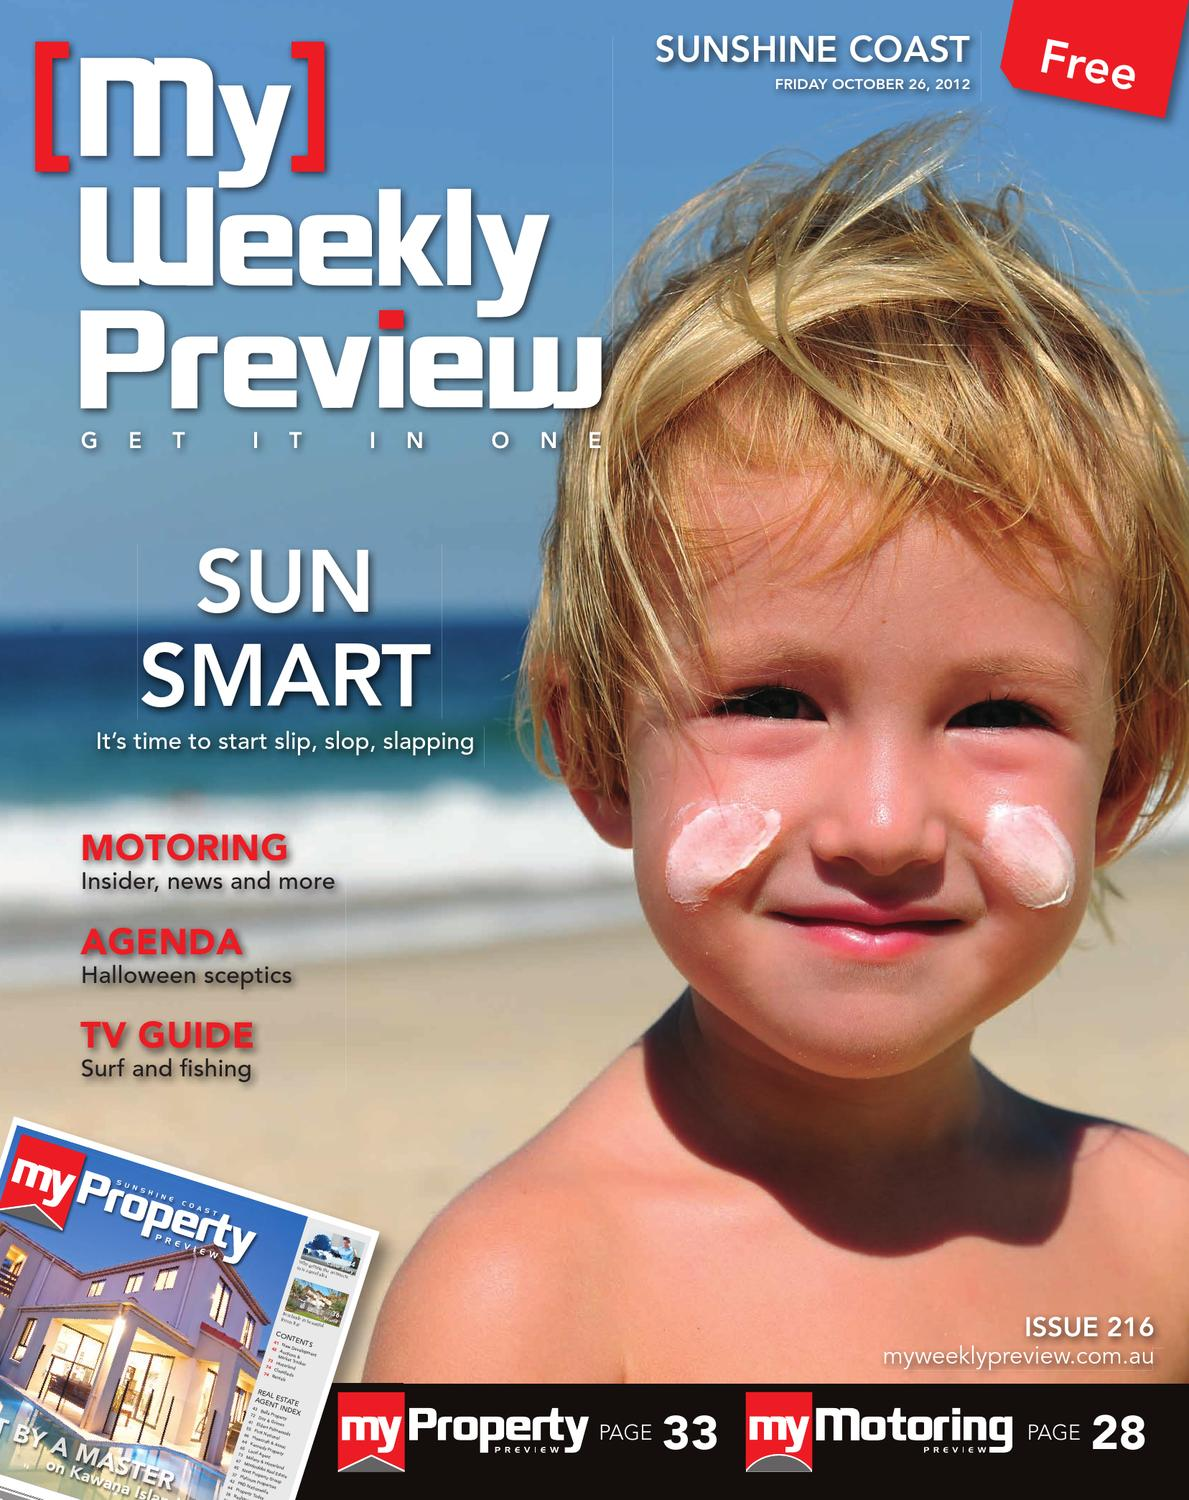 My Weekly Preview Issue 216 - October 26, 2012 by My Weekly